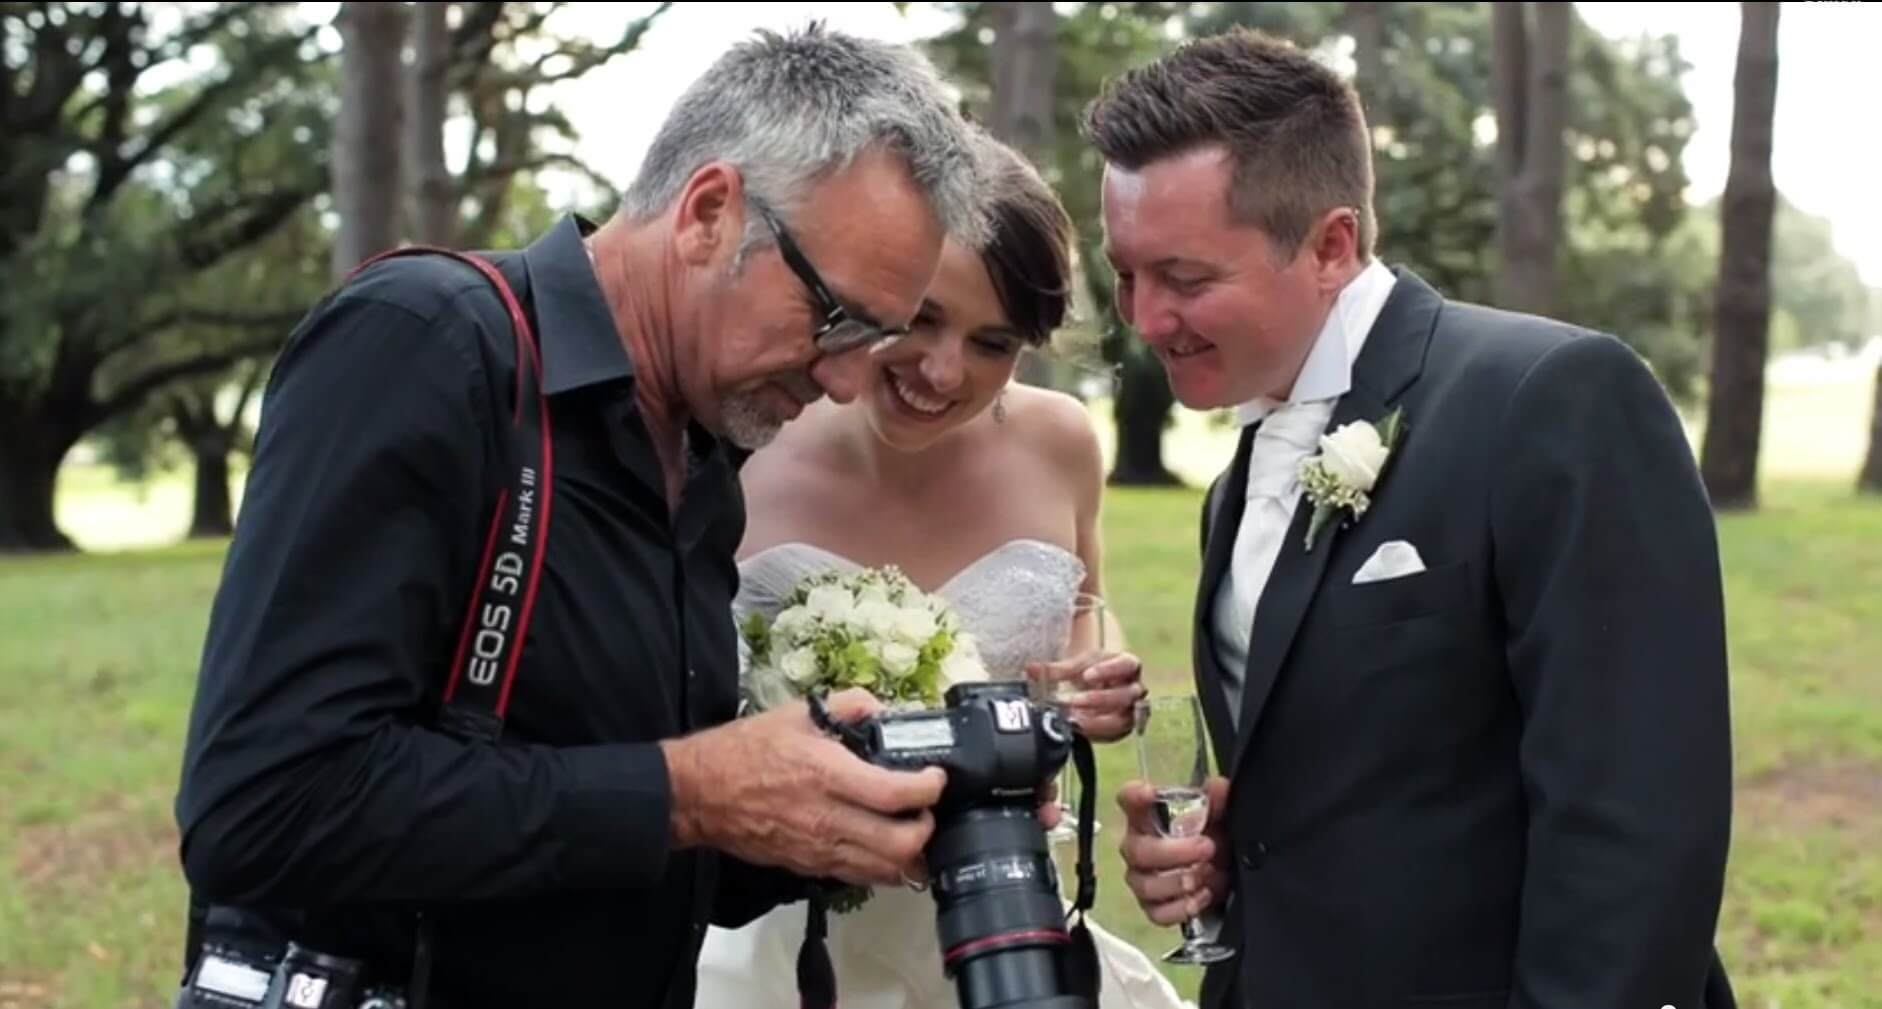 Canon Wedding Photography Lens: 5 Best Canon Lenses For Portraits And Wedding Photography